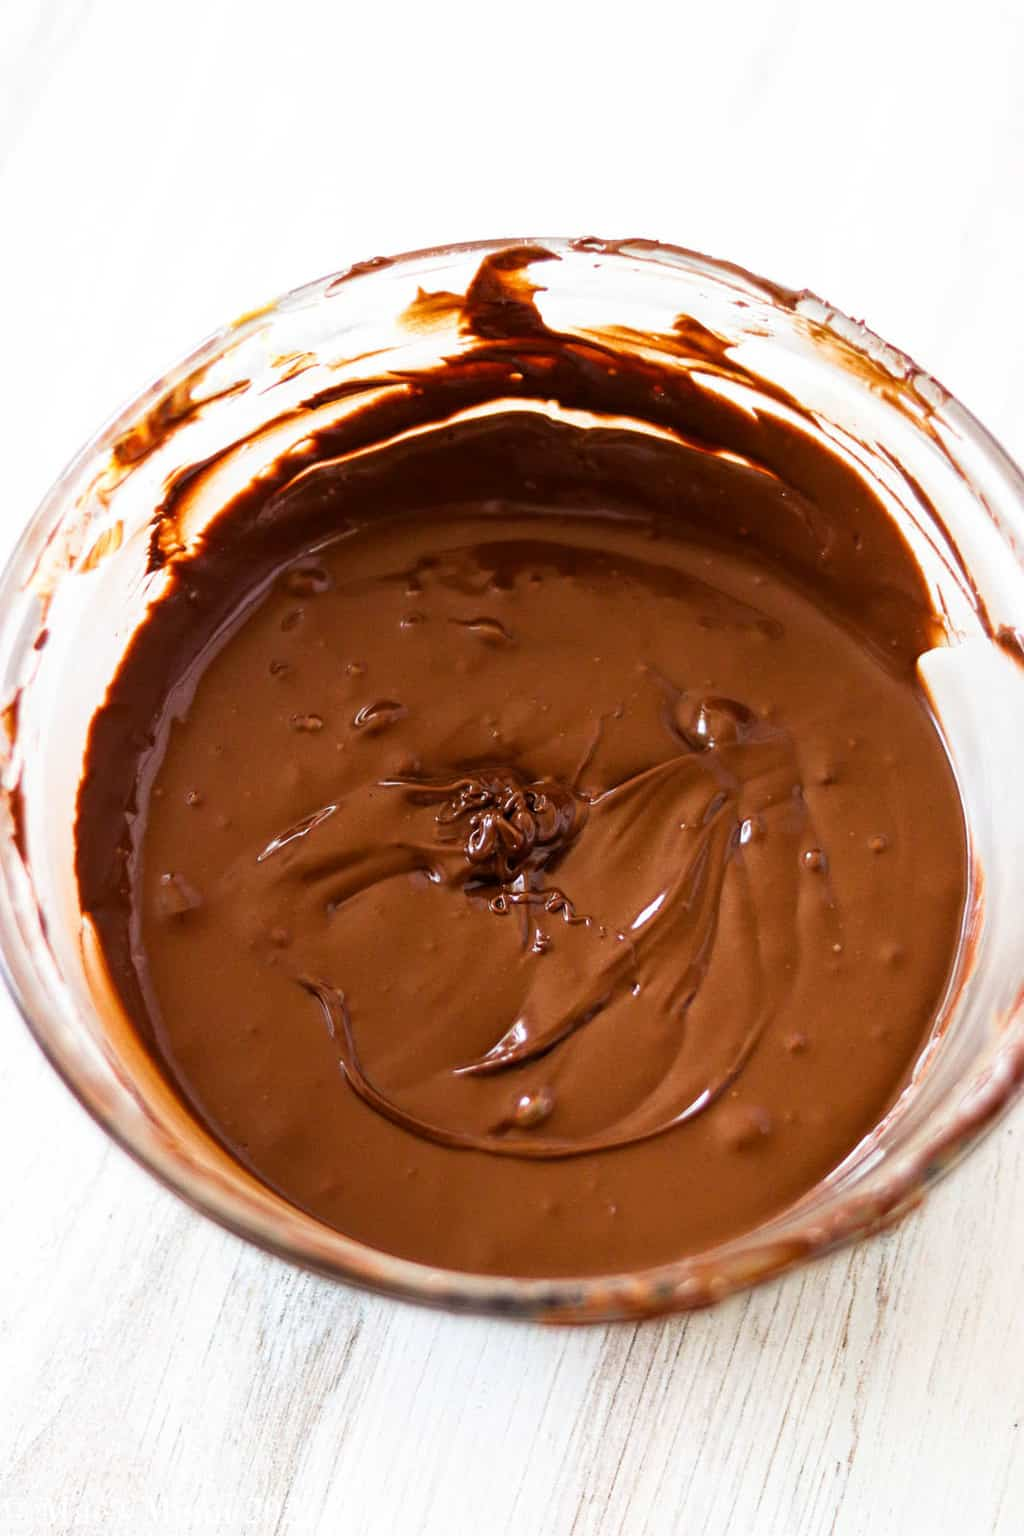 A bowl of melted chocolate and peanut butter